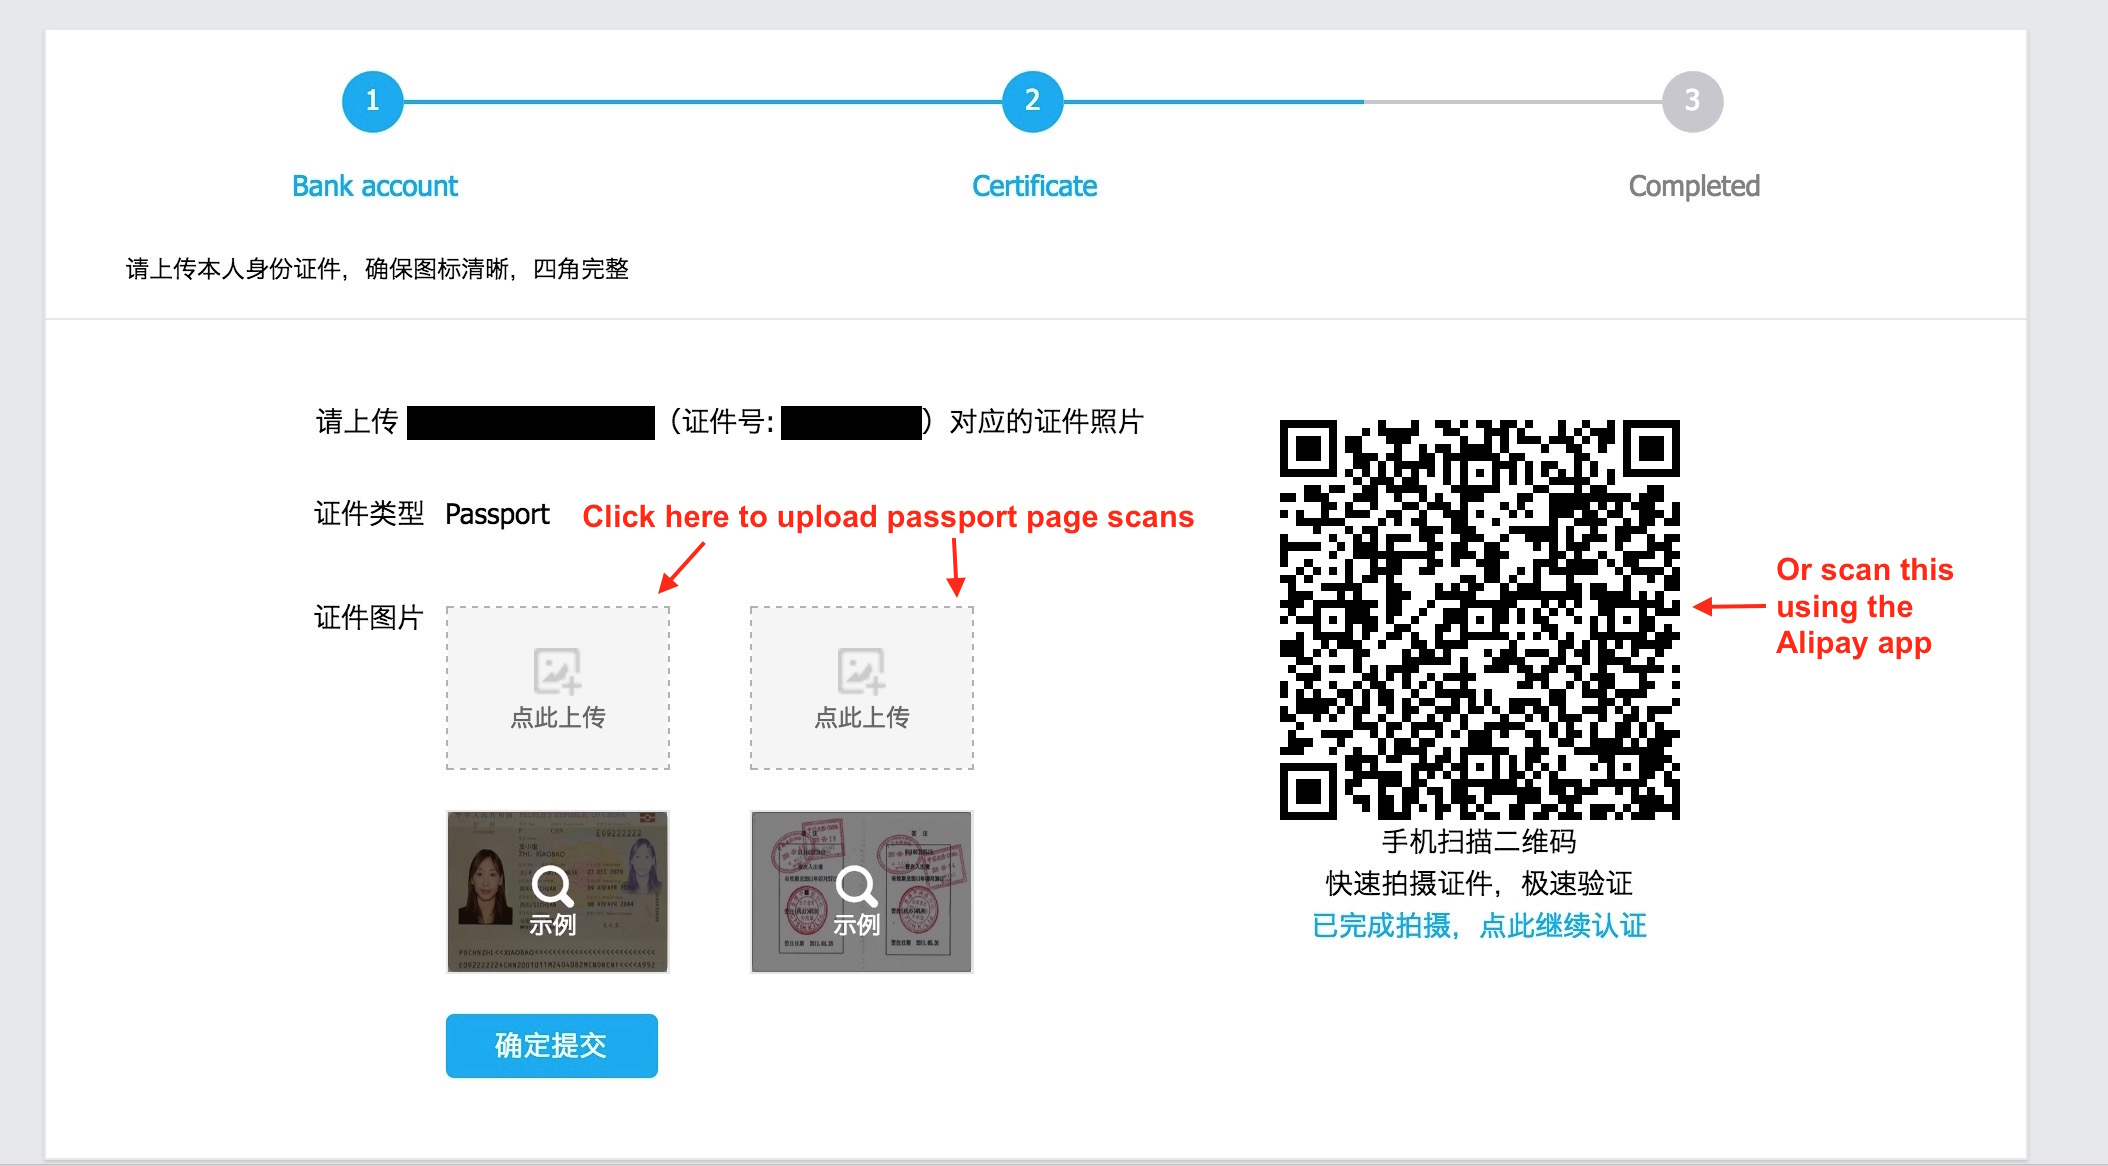 How to Setup and Use Alipay